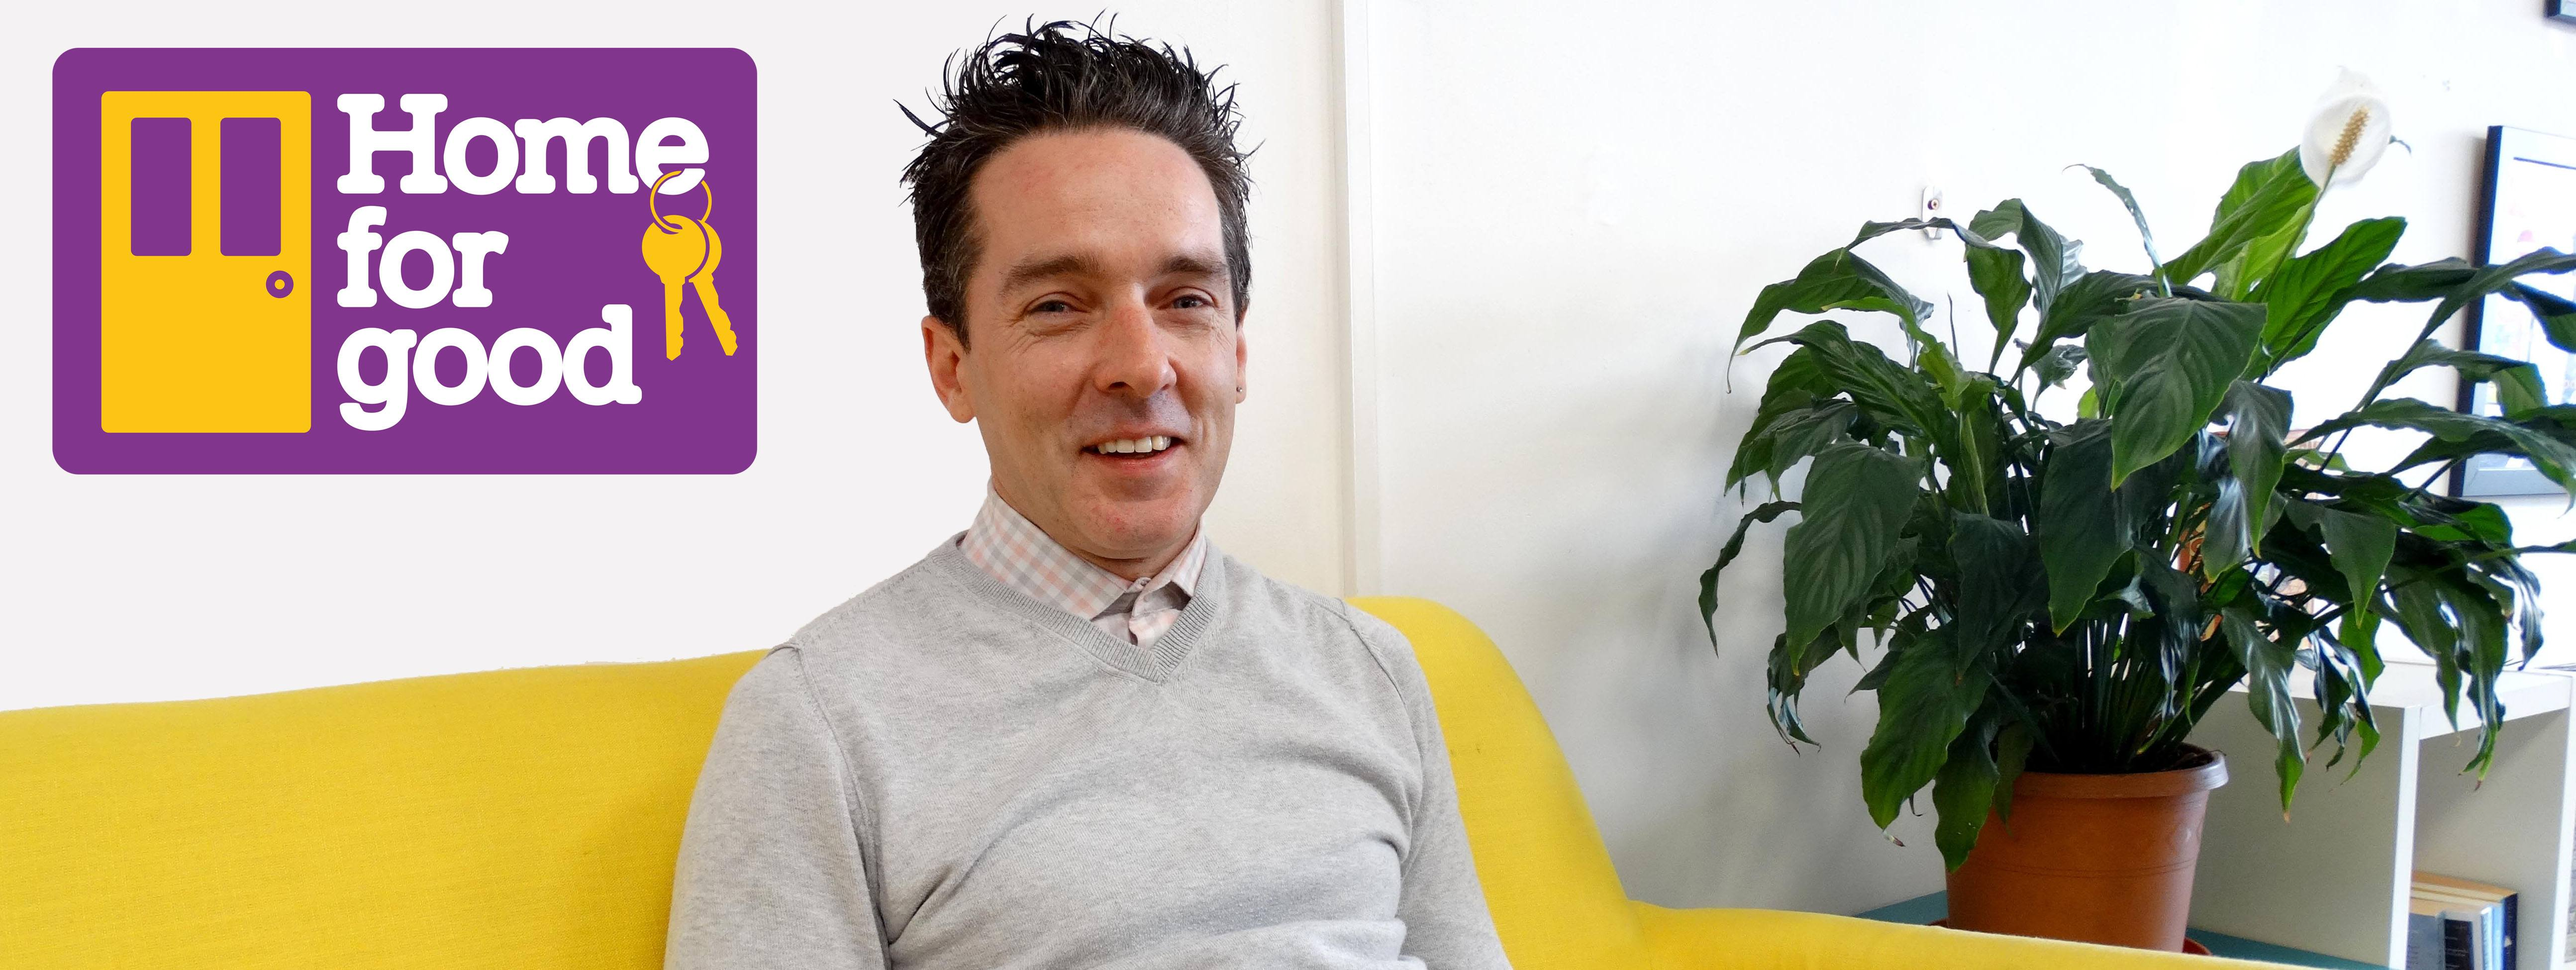 Kevin on his sofa with the Home for Good campaign logo